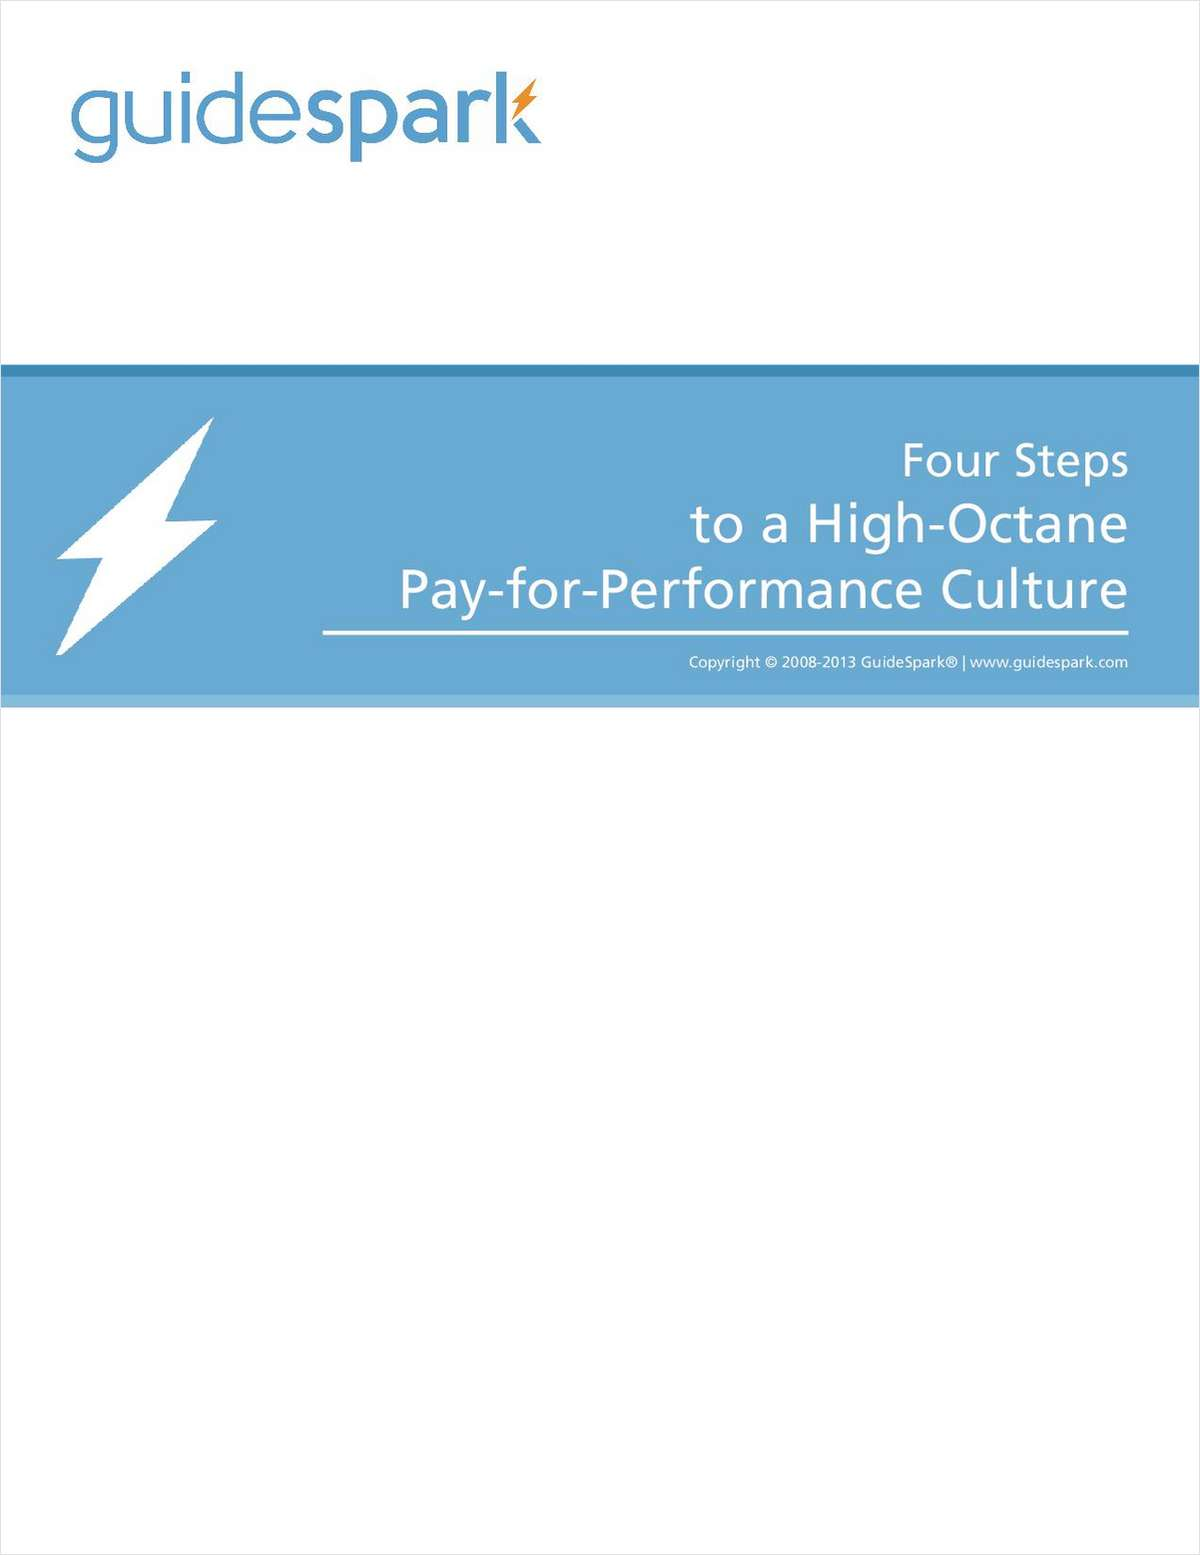 Four Steps to a High-Octane Pay-for-Performance Culture